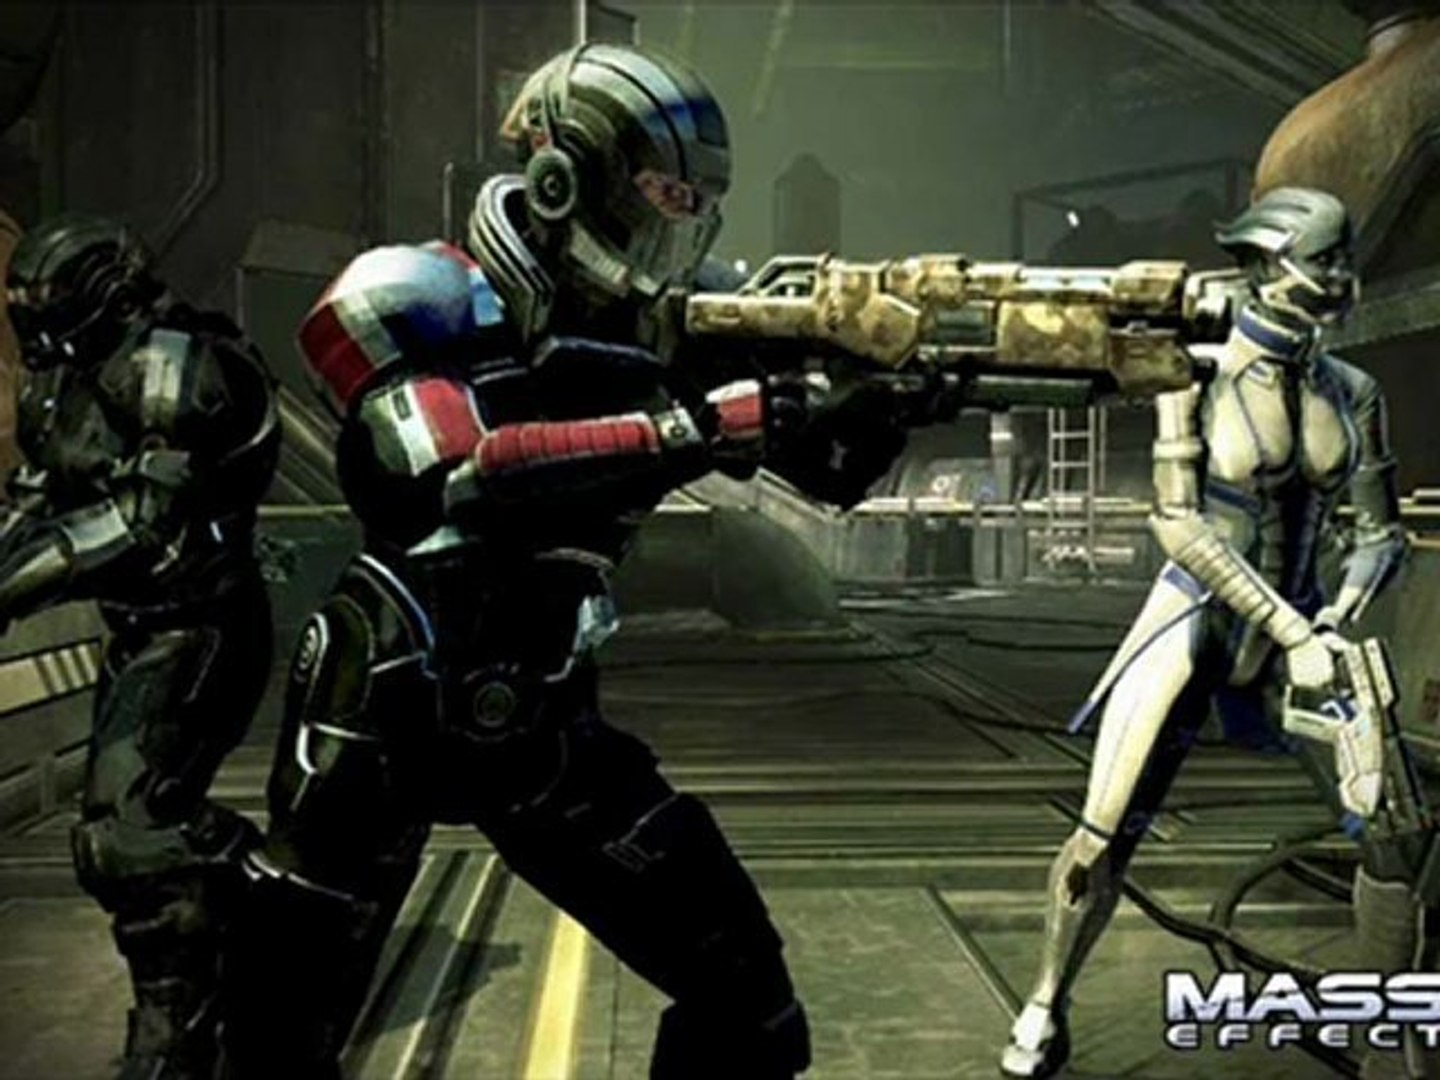 MASS EFFECT 3 Trainer n 2016 n 2017 FREE Download n Télécharger